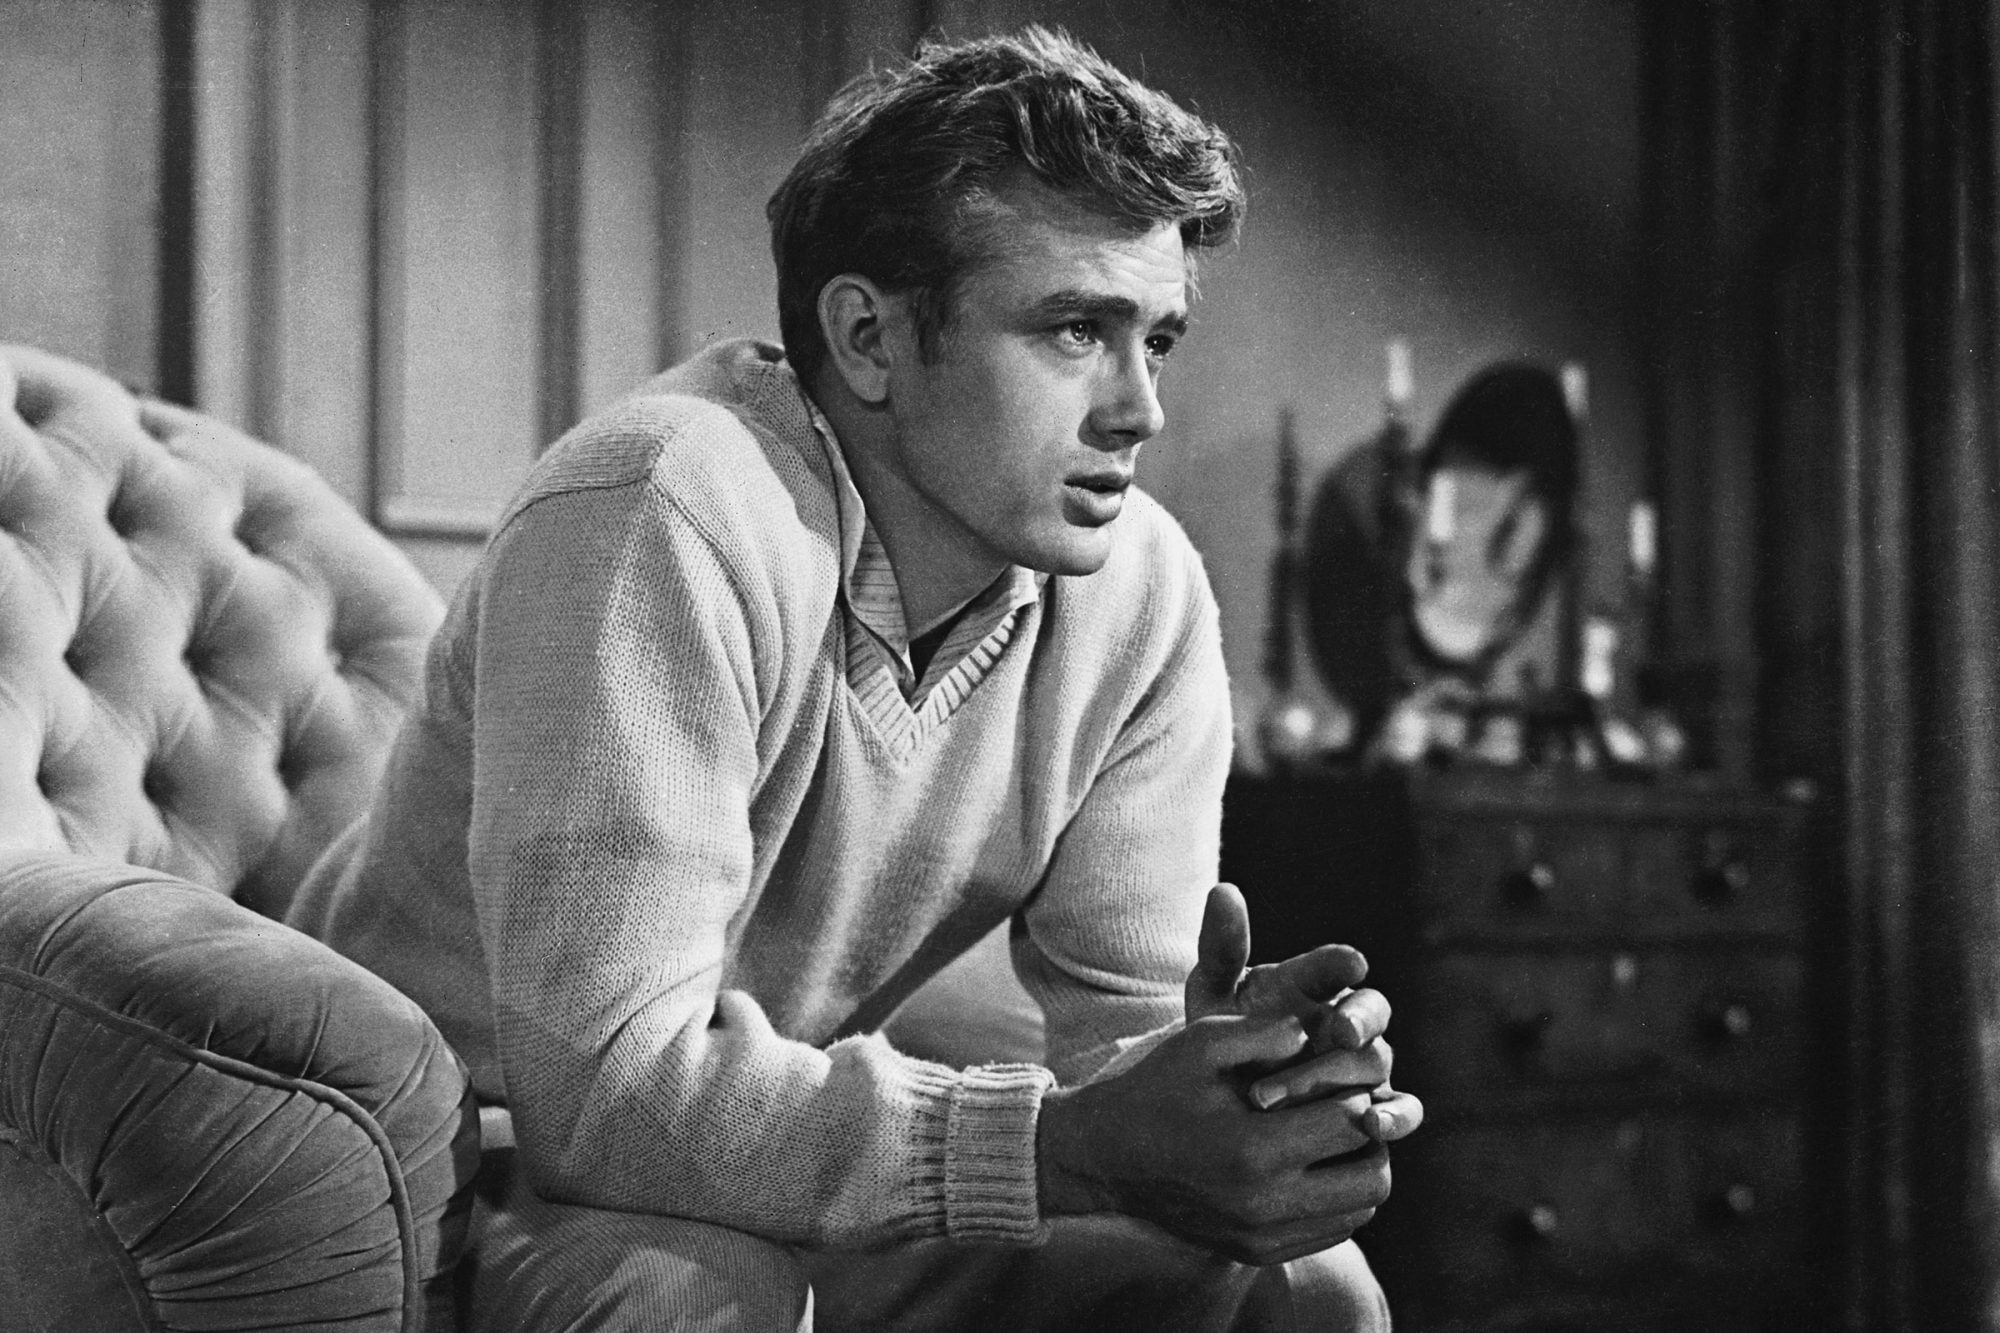 James Dean (1931 - 1955) plays the angst-ridden Cal Trask in 'East of Eden', directed by Elia Kazan and based on the novel by John Stein